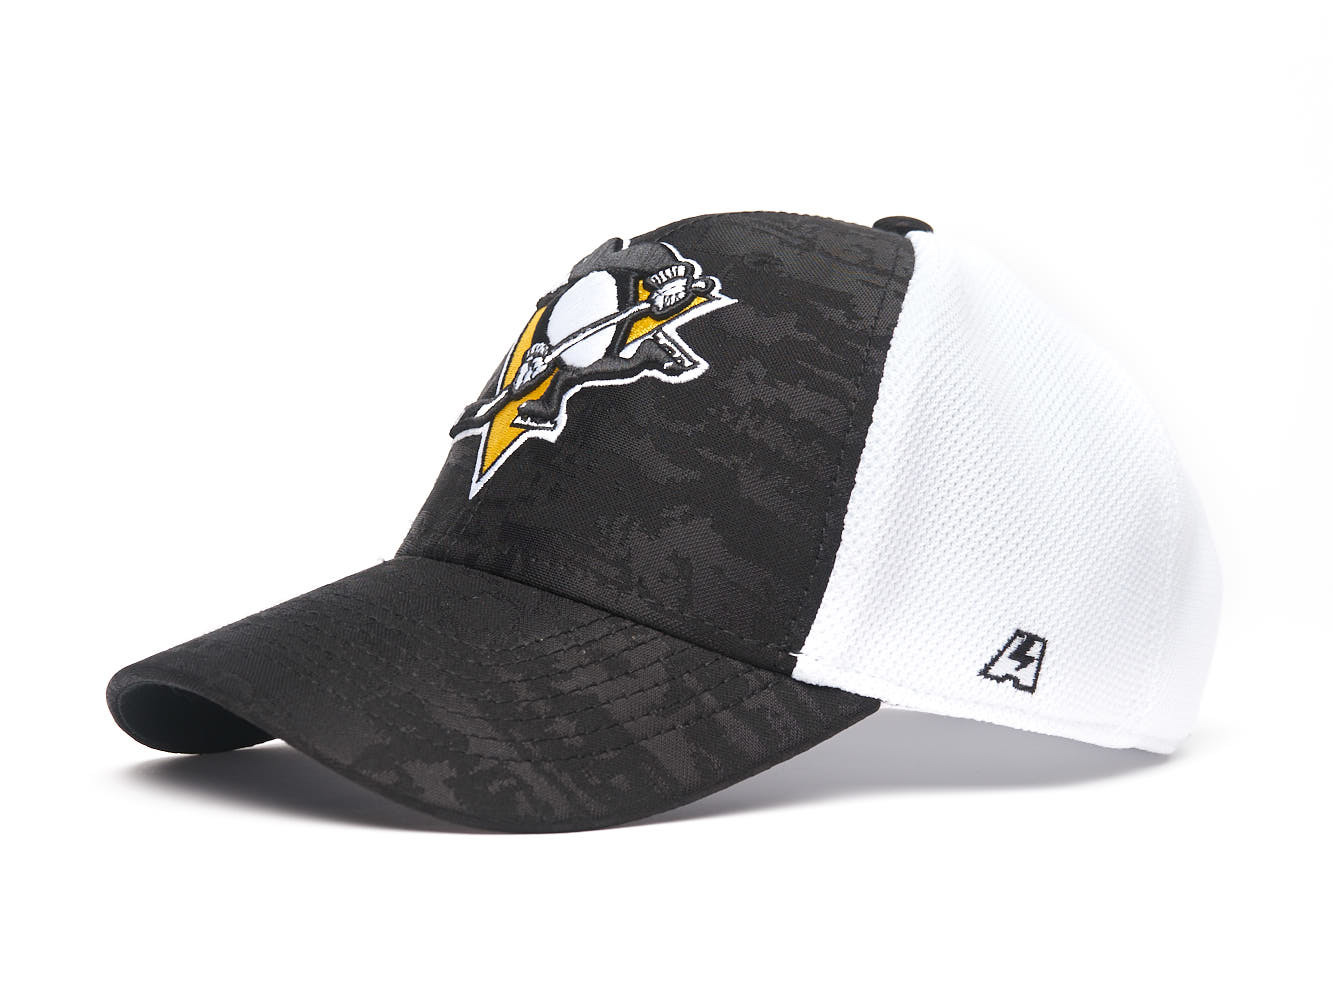 Бейсболка NHL Pittsburgh Penguins (размер S)